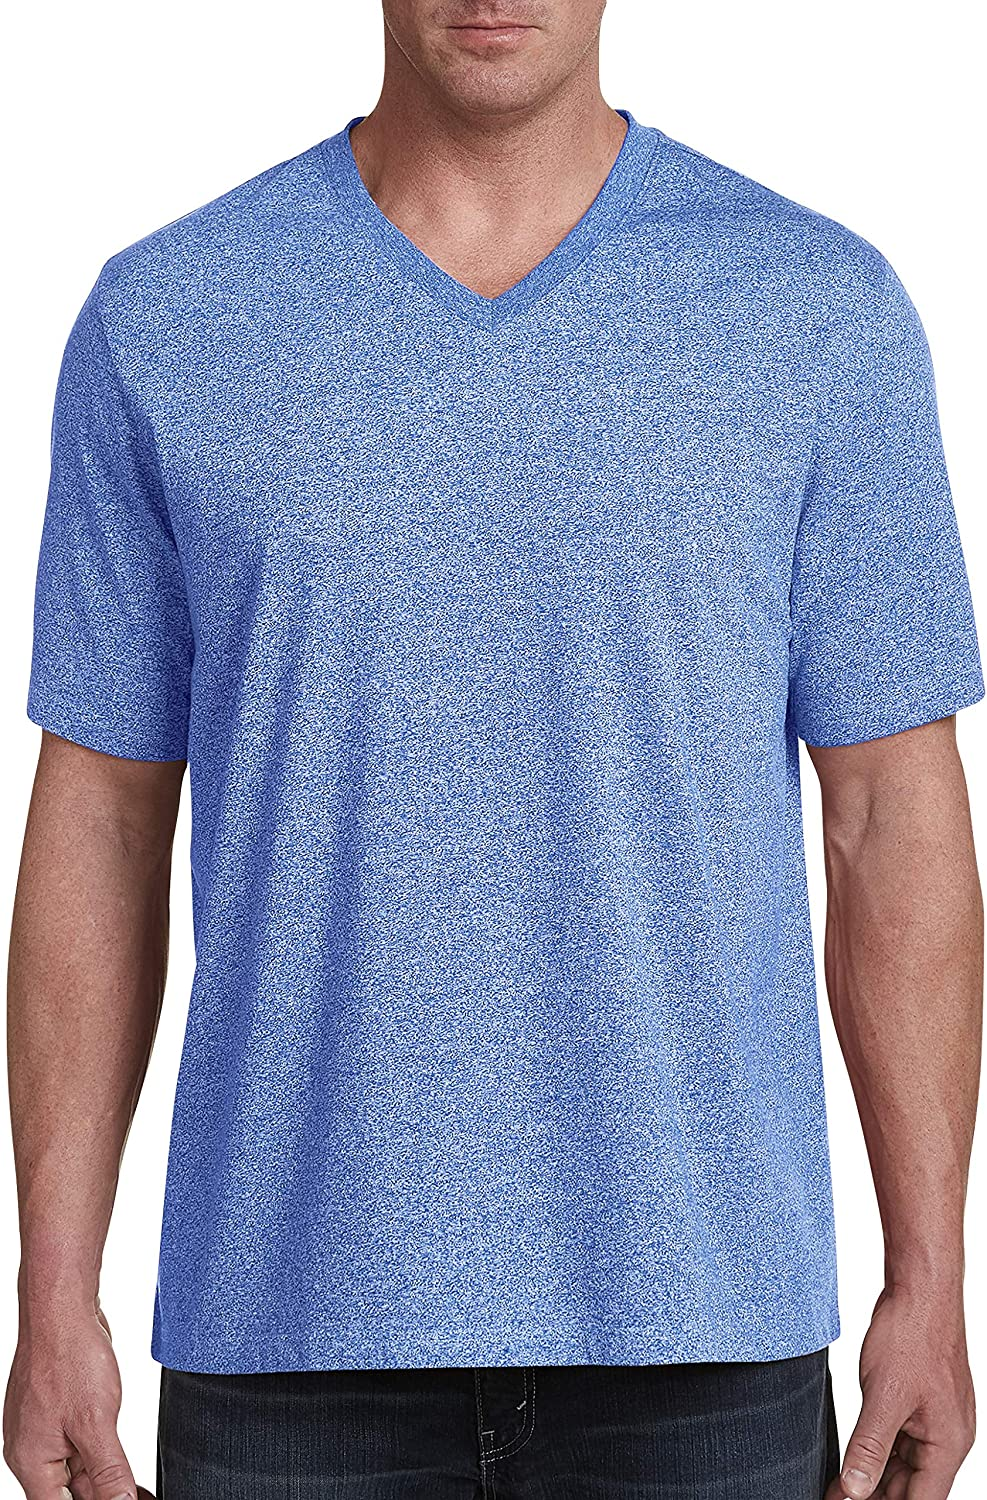 Harbor Bay by DXL Big and Tall Wicking Jersey V-Neck Tee, Nautical Blue Marl Heather, 1XL